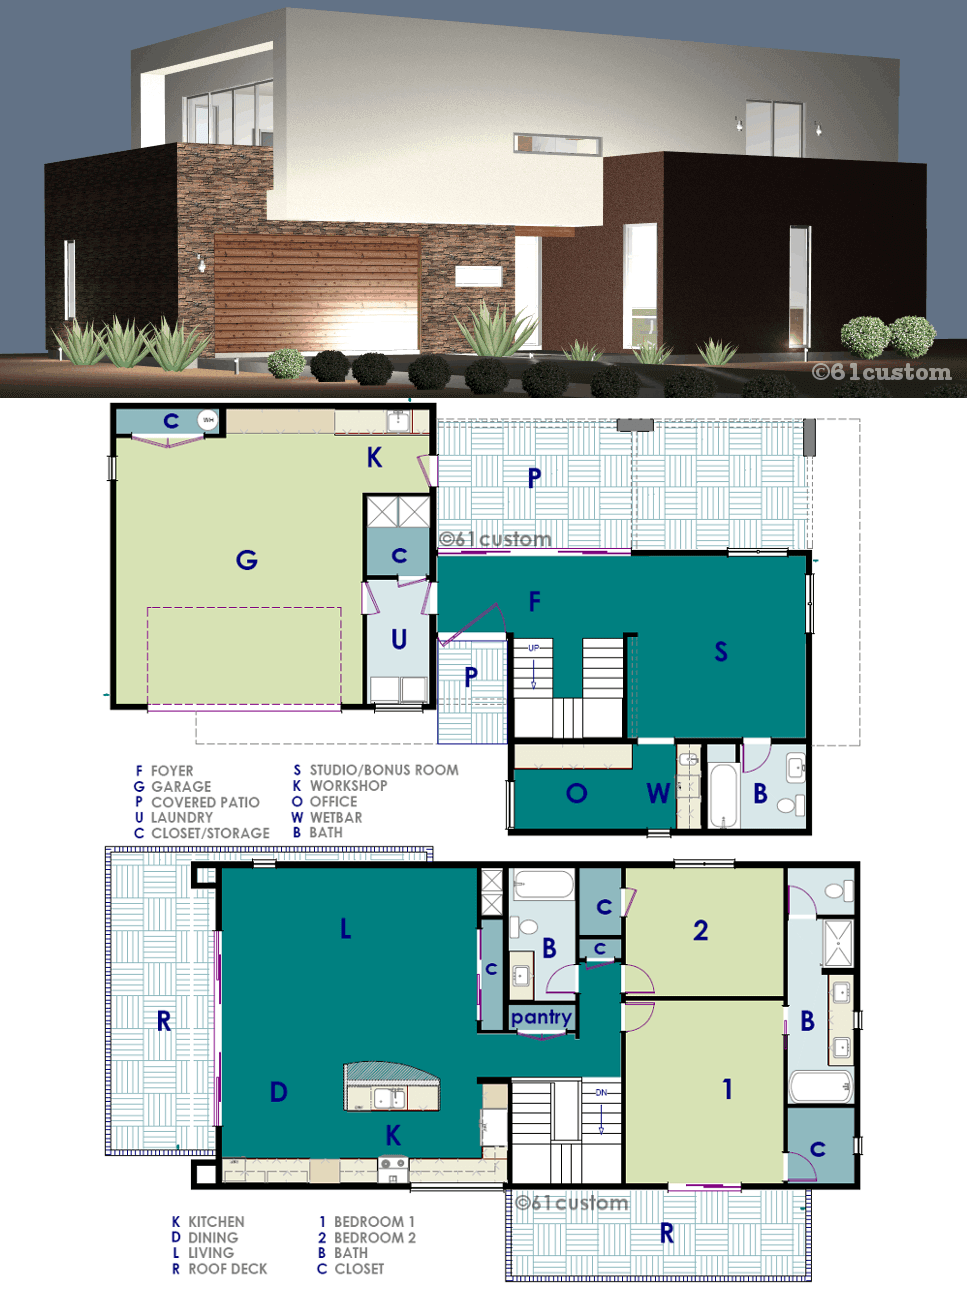 Ultra modern live work house plan 61custom for Custom home plans with pictures